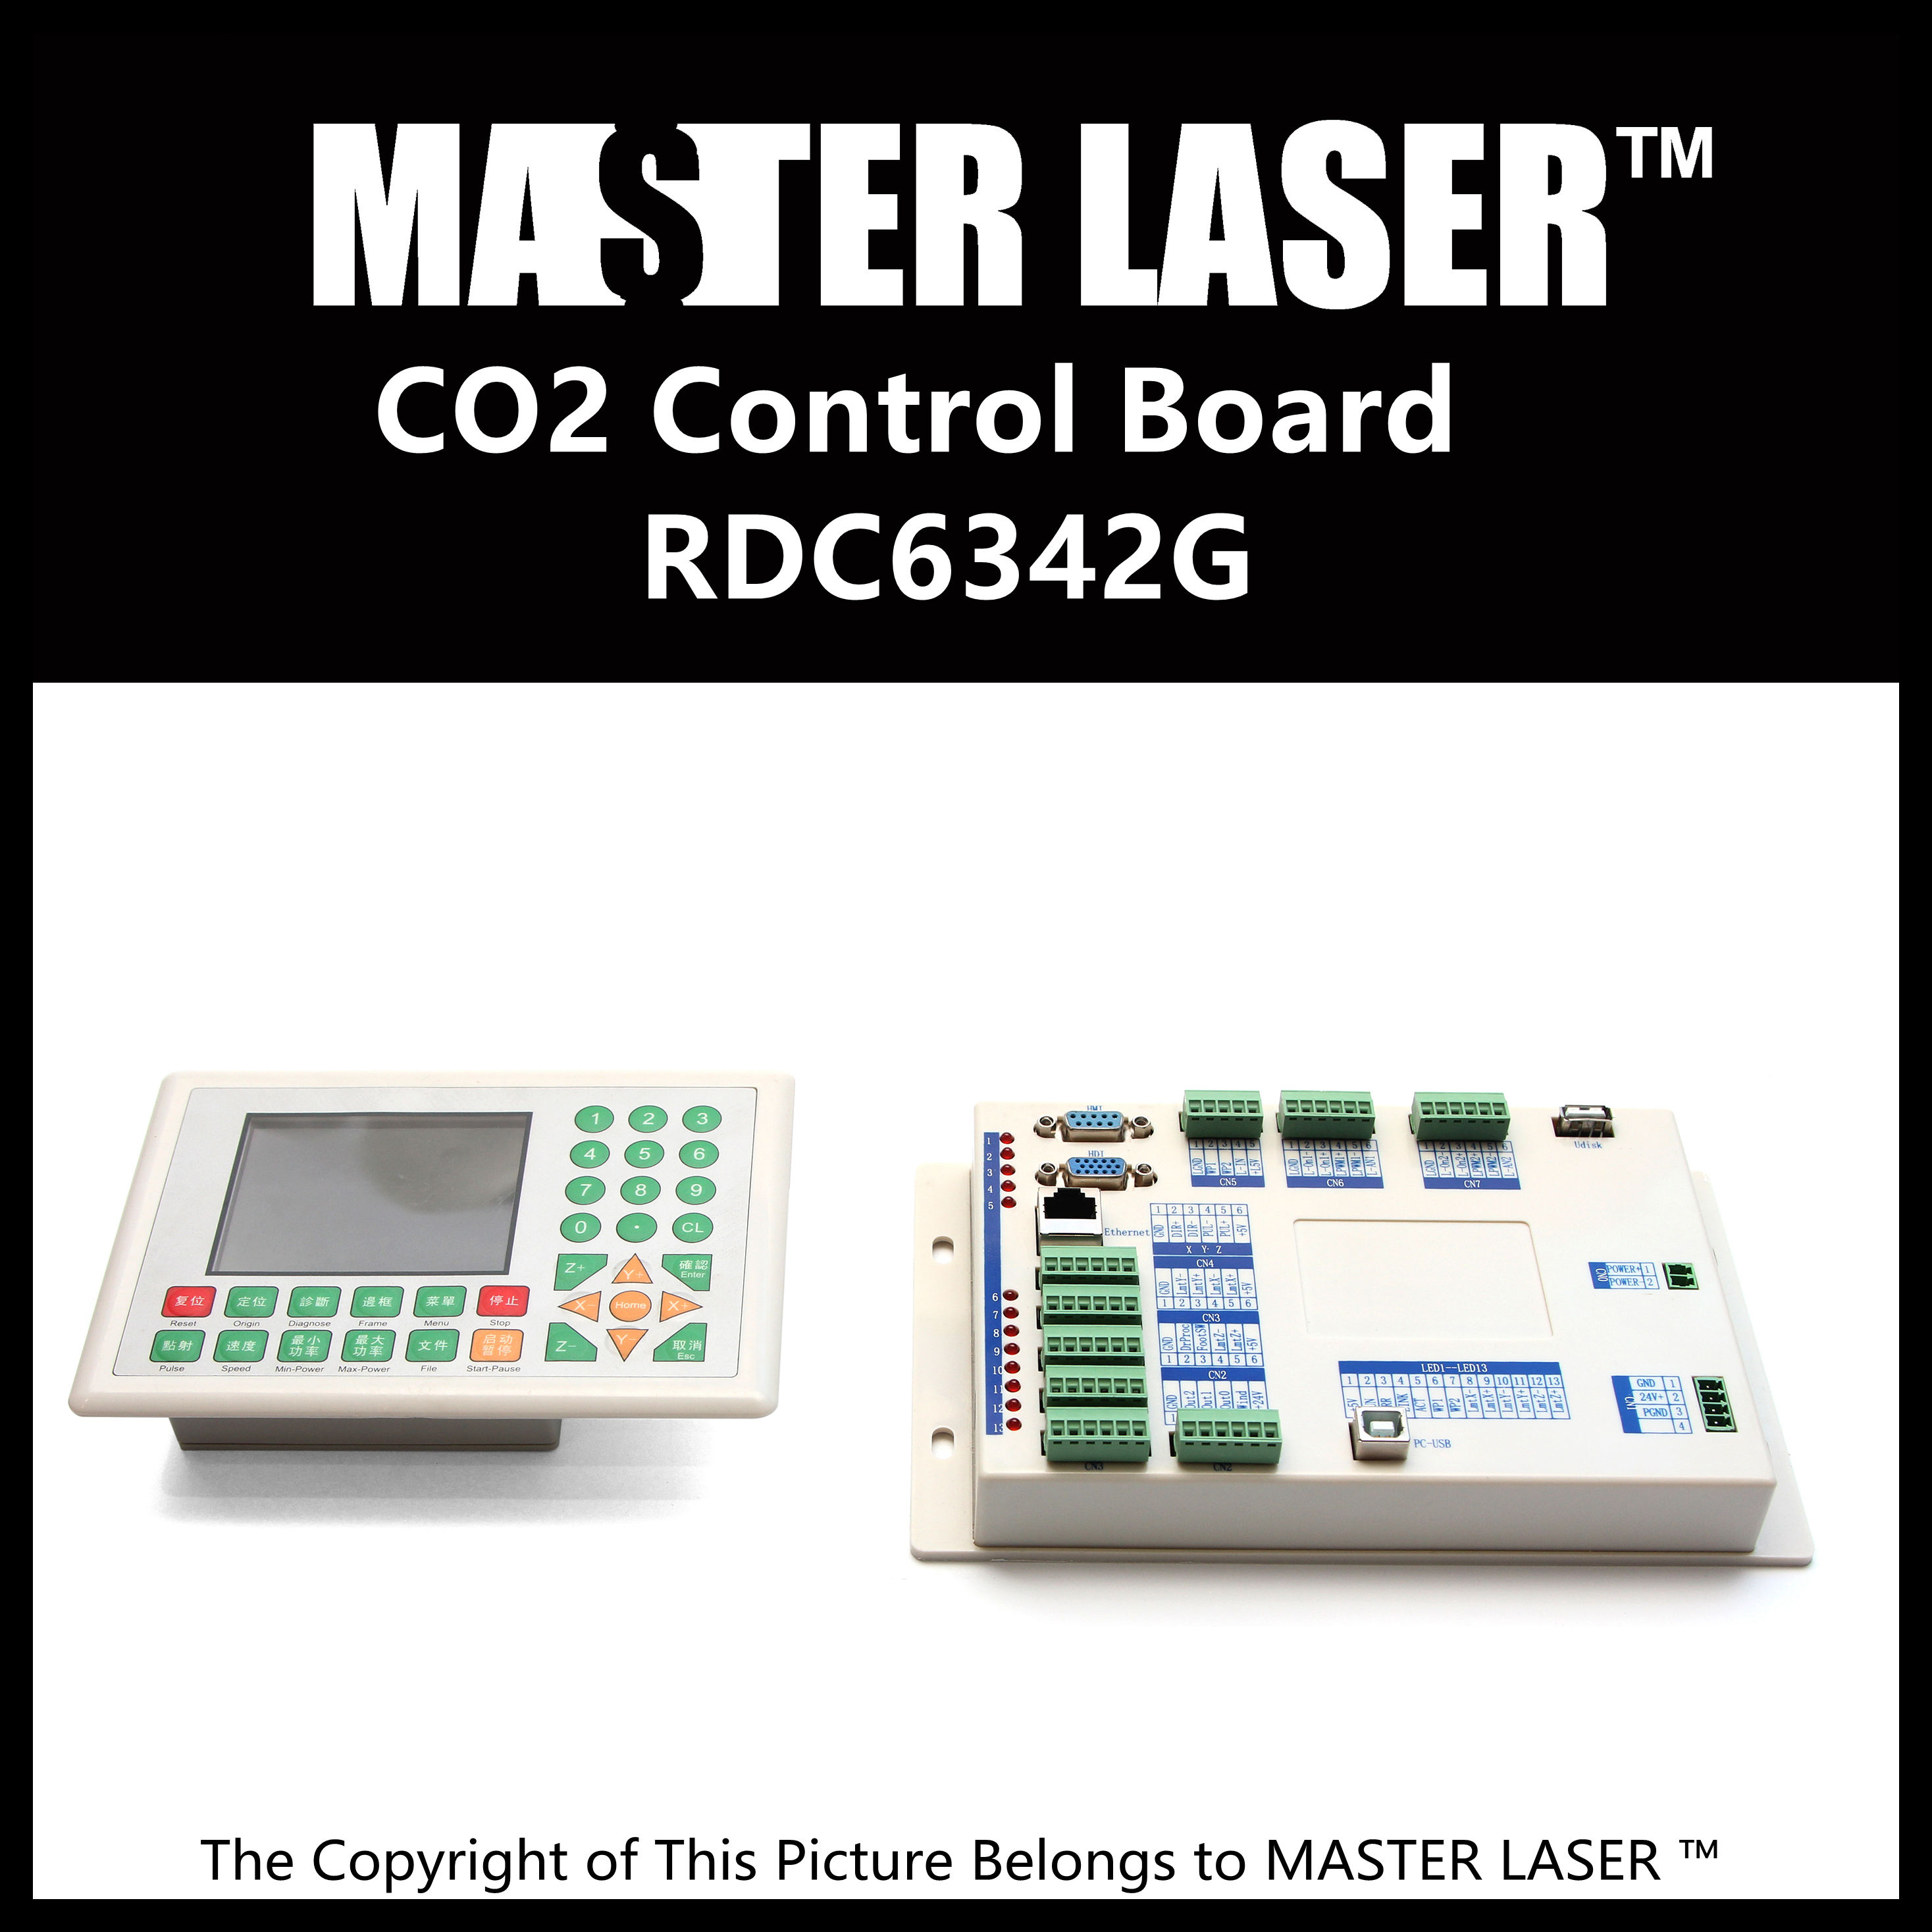 New Generation Colorful Display Laser Engraving Cutting Control System RDC6342G Laser Control Board System